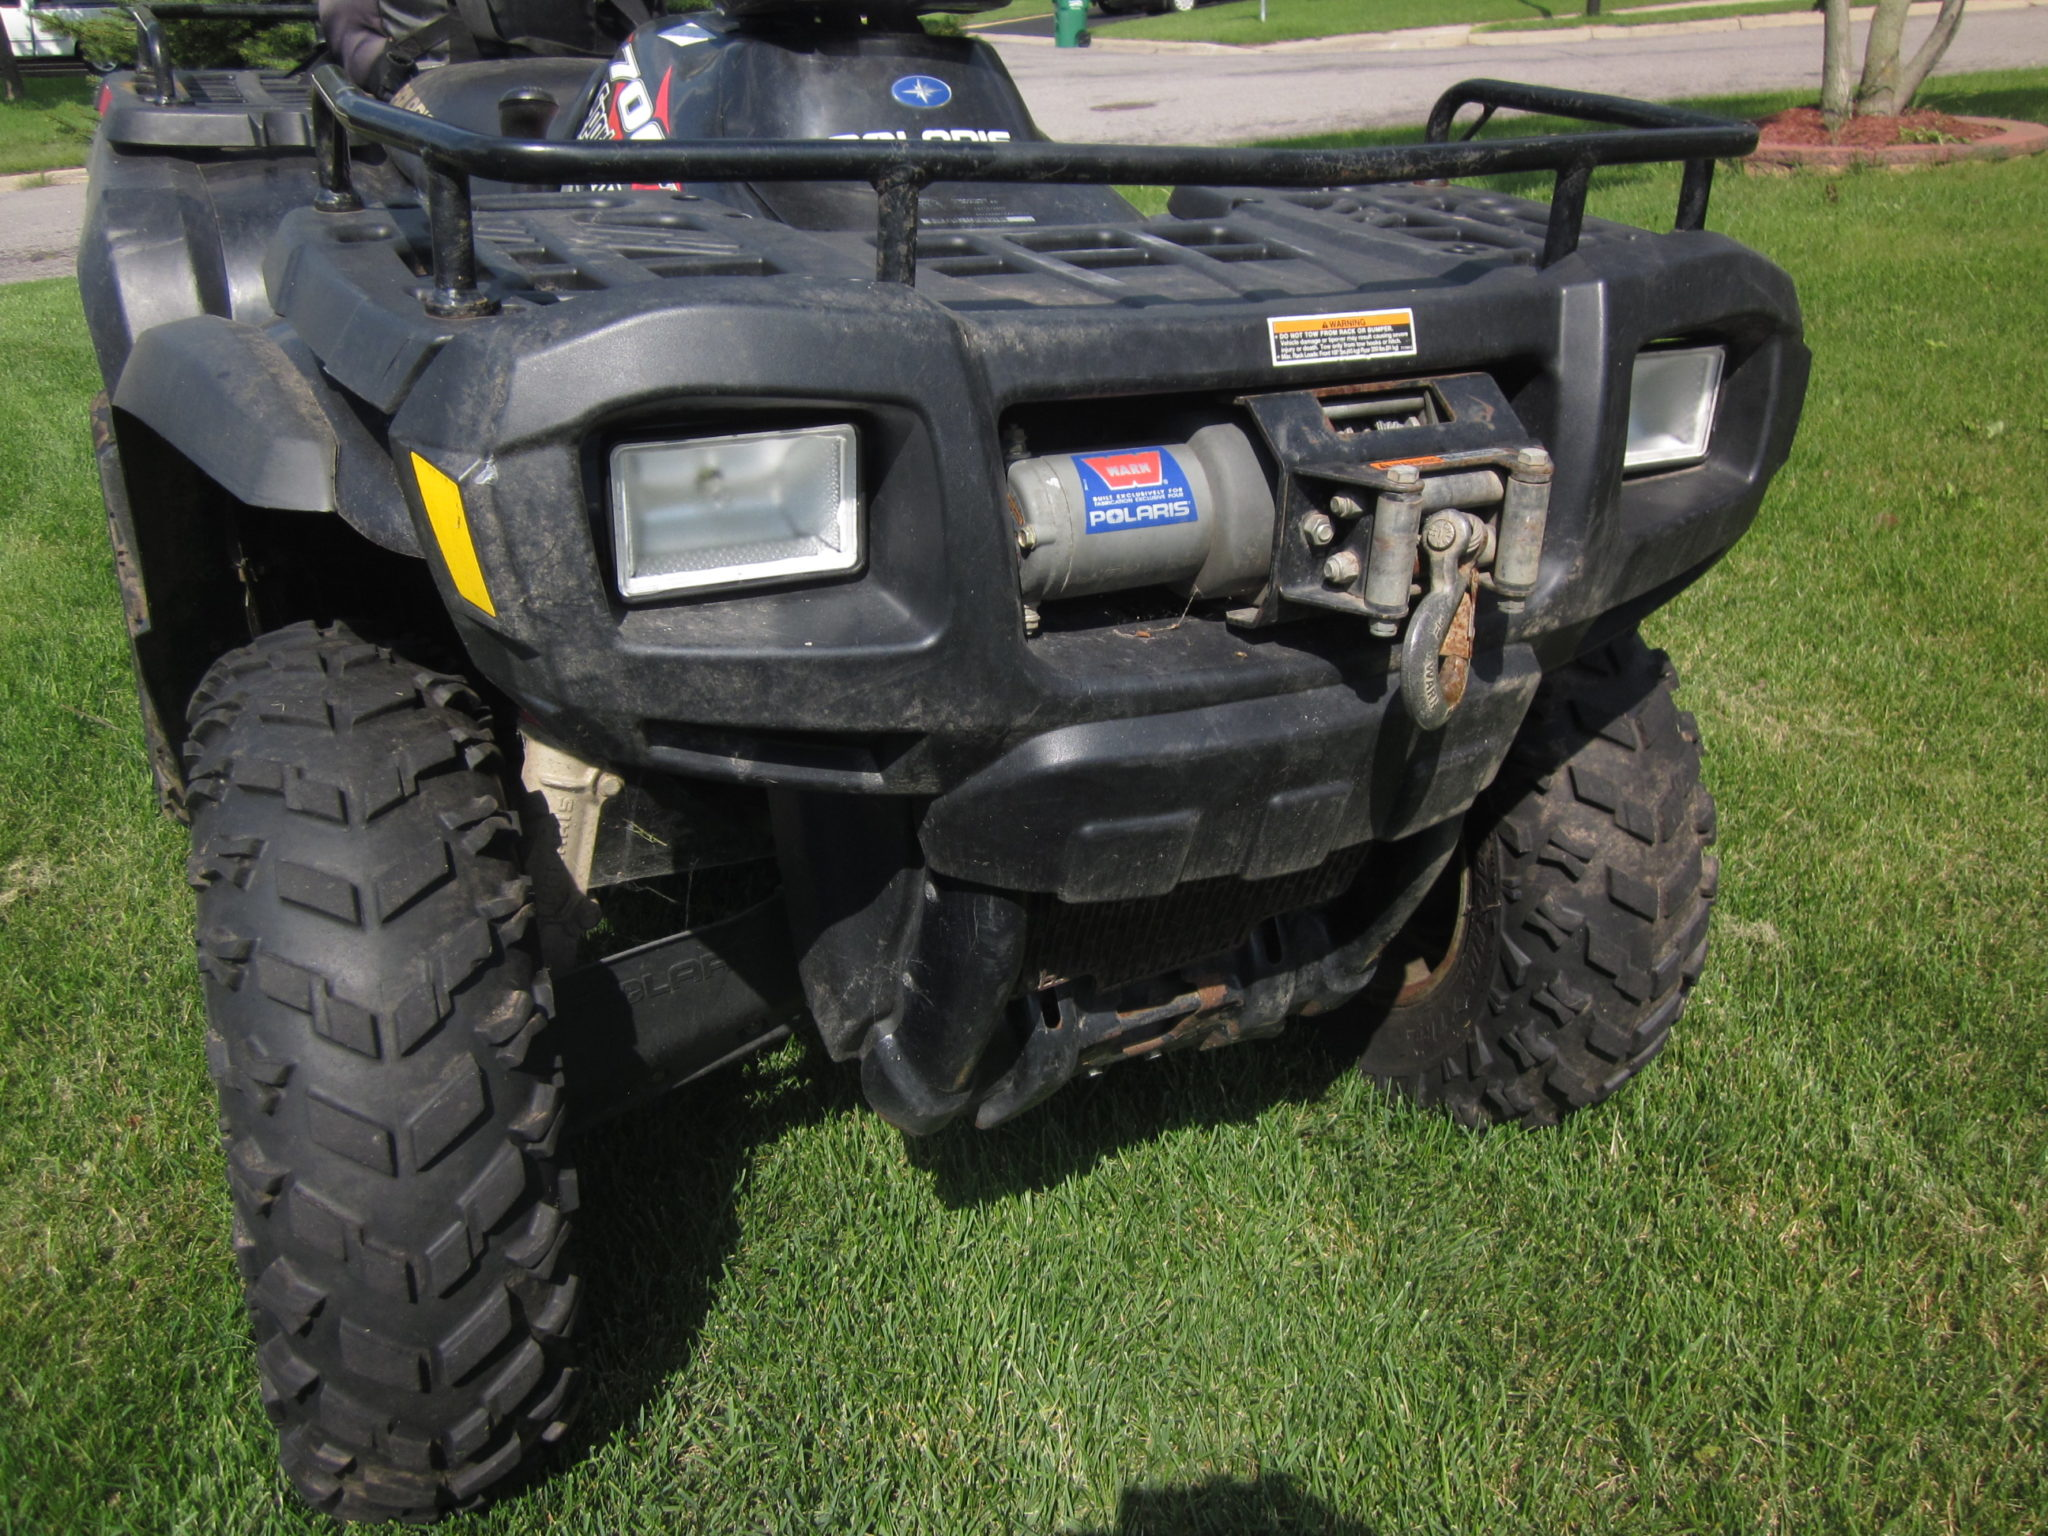 2001 Sportsman 400 Fuse Box Trusted Wiring Diagram 2006 Polaris 450 Location Explained Diagrams Accessories